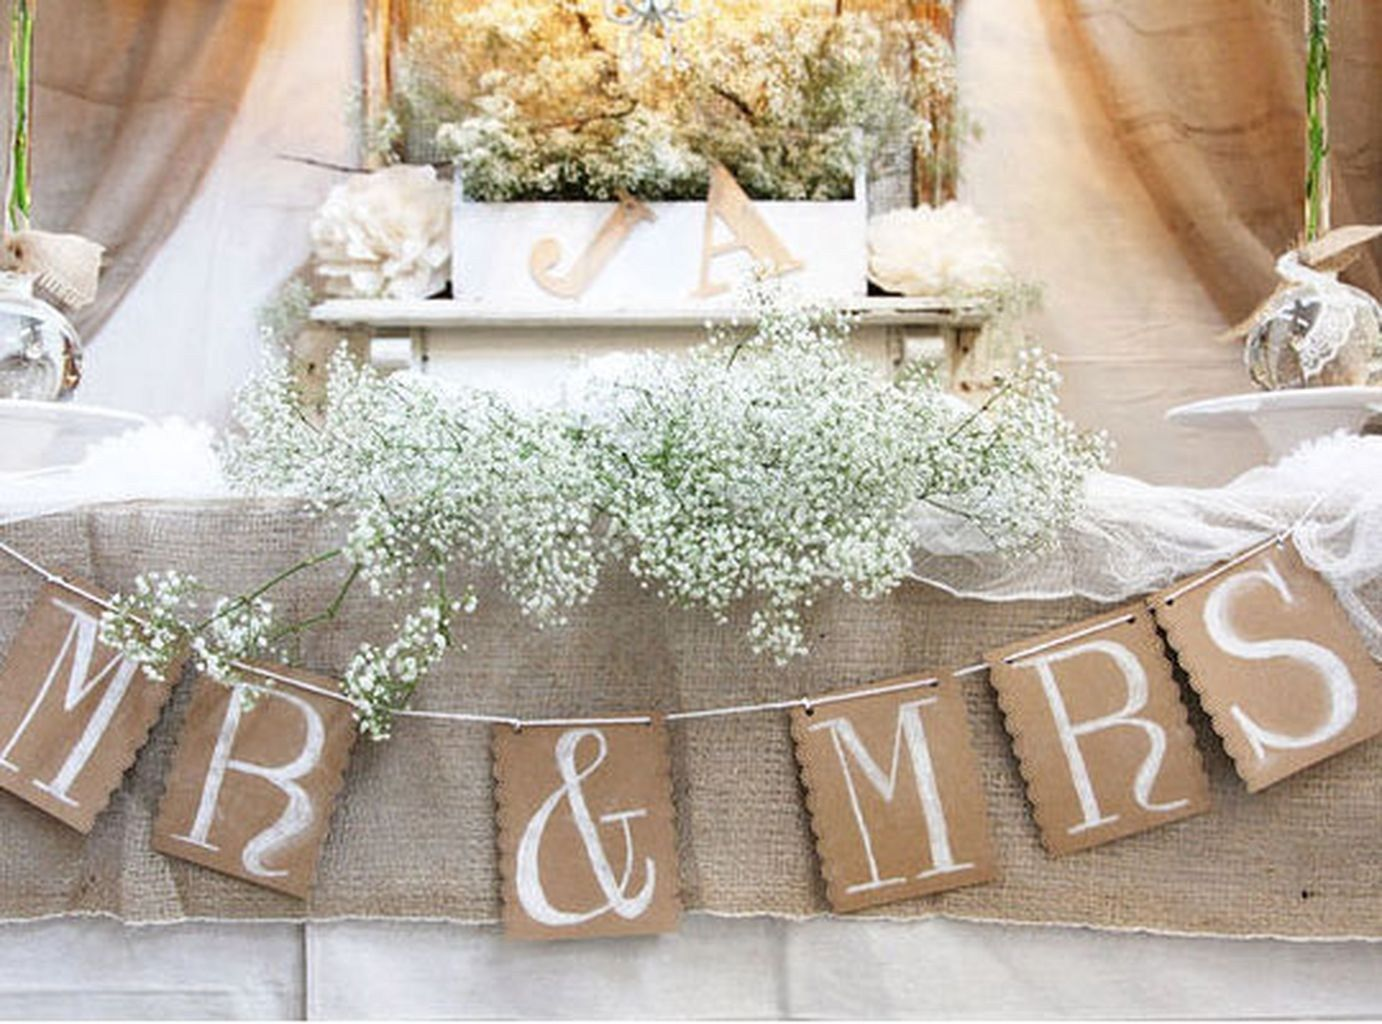 Diy wedding shower decorations   Inexpensive and Unique Summer Themed Bridal Shower Ideas